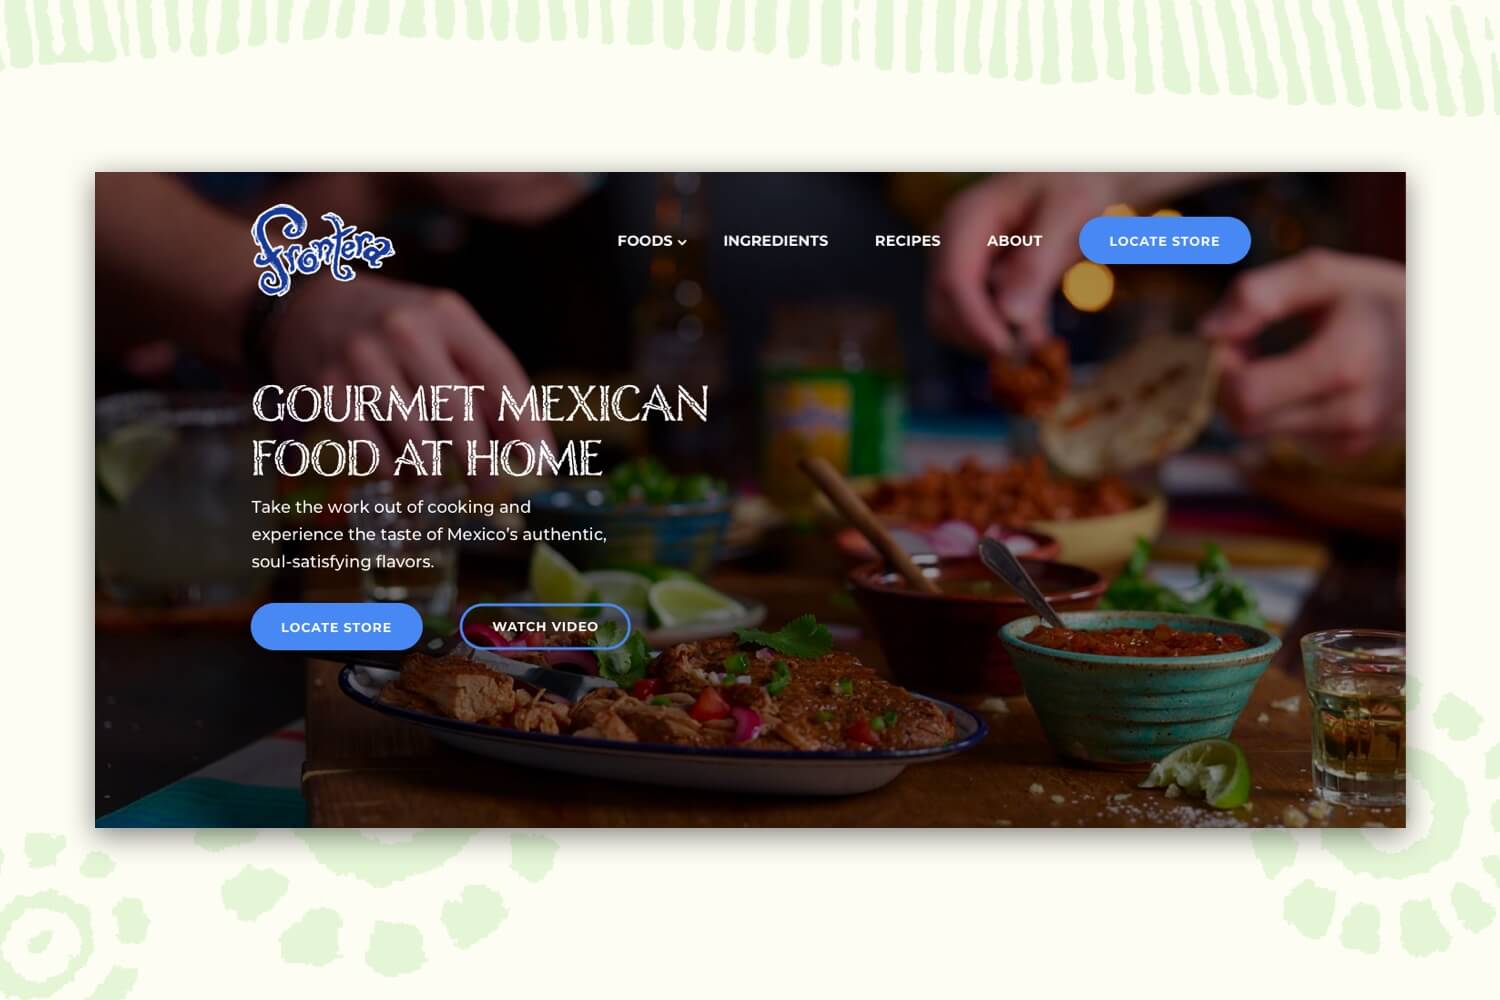 Redesigned header of Frontera's website.